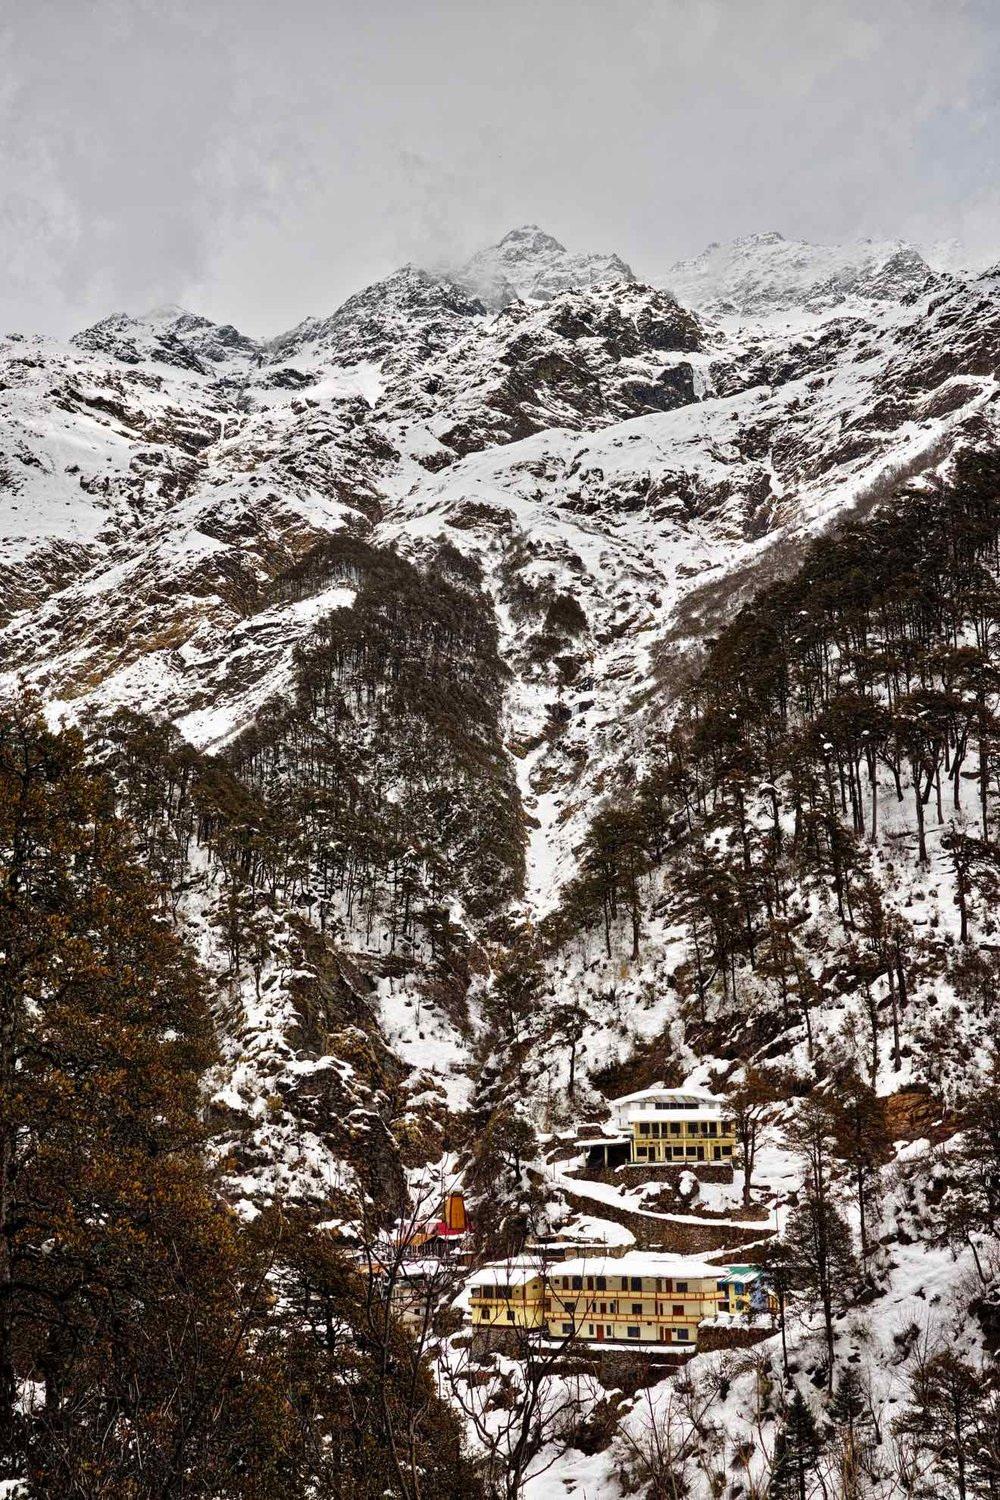 Yamunotri temple flanked by Bandarpoonch in Winter/Spring 2017.